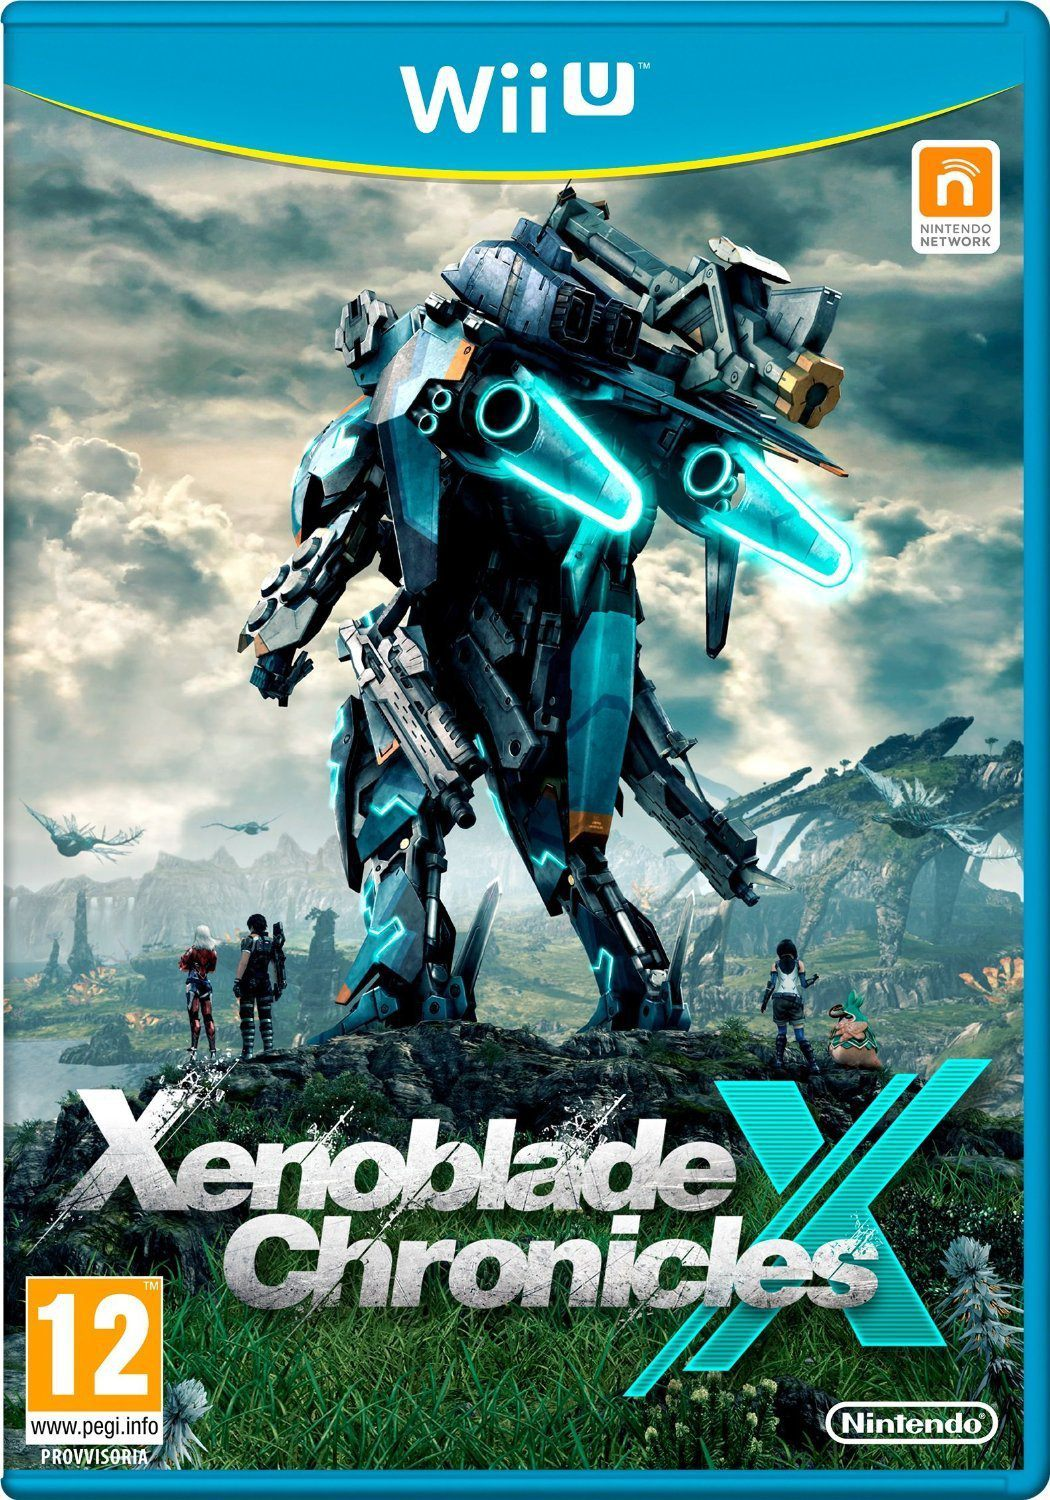 Ver Xenoblade Chronicles X Wiiu